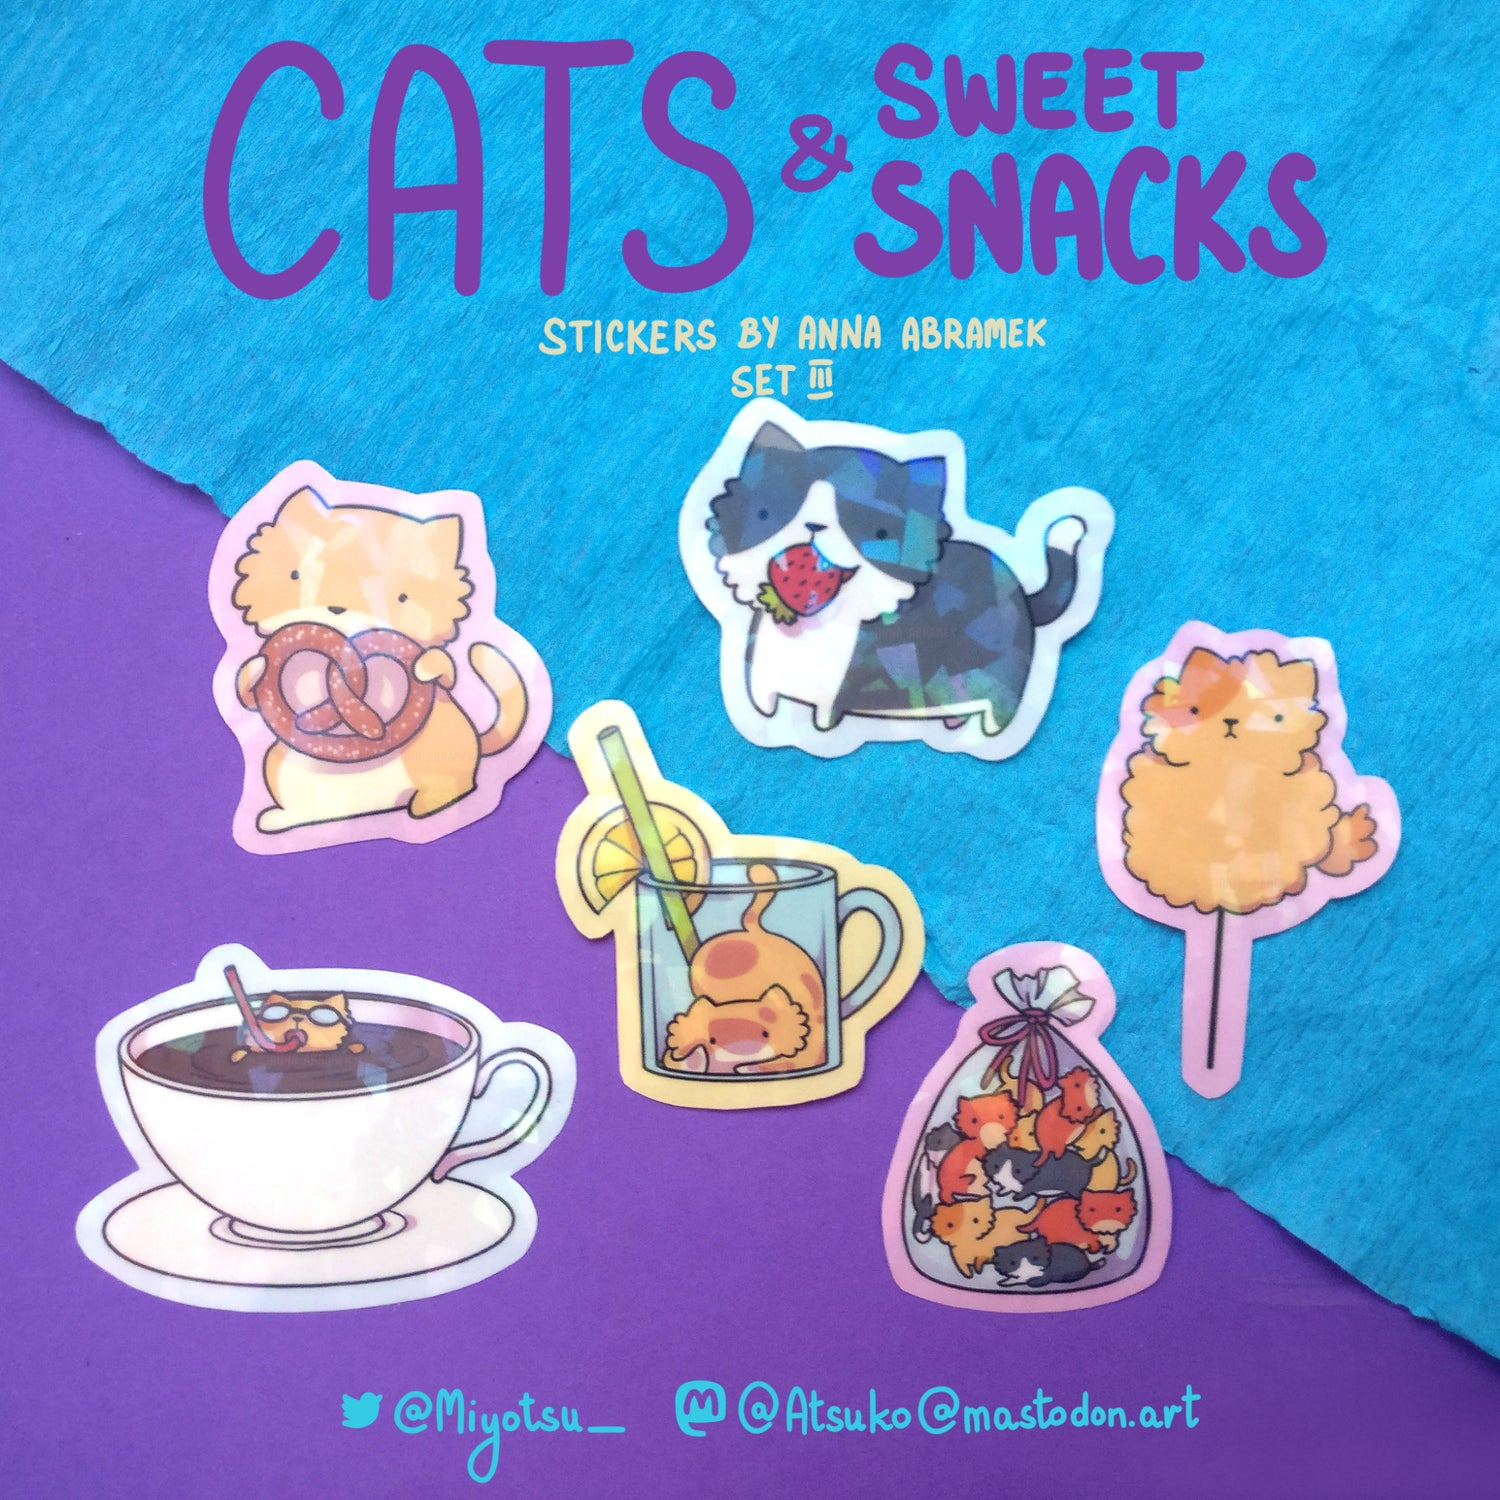 cats and sweet snacks stickers